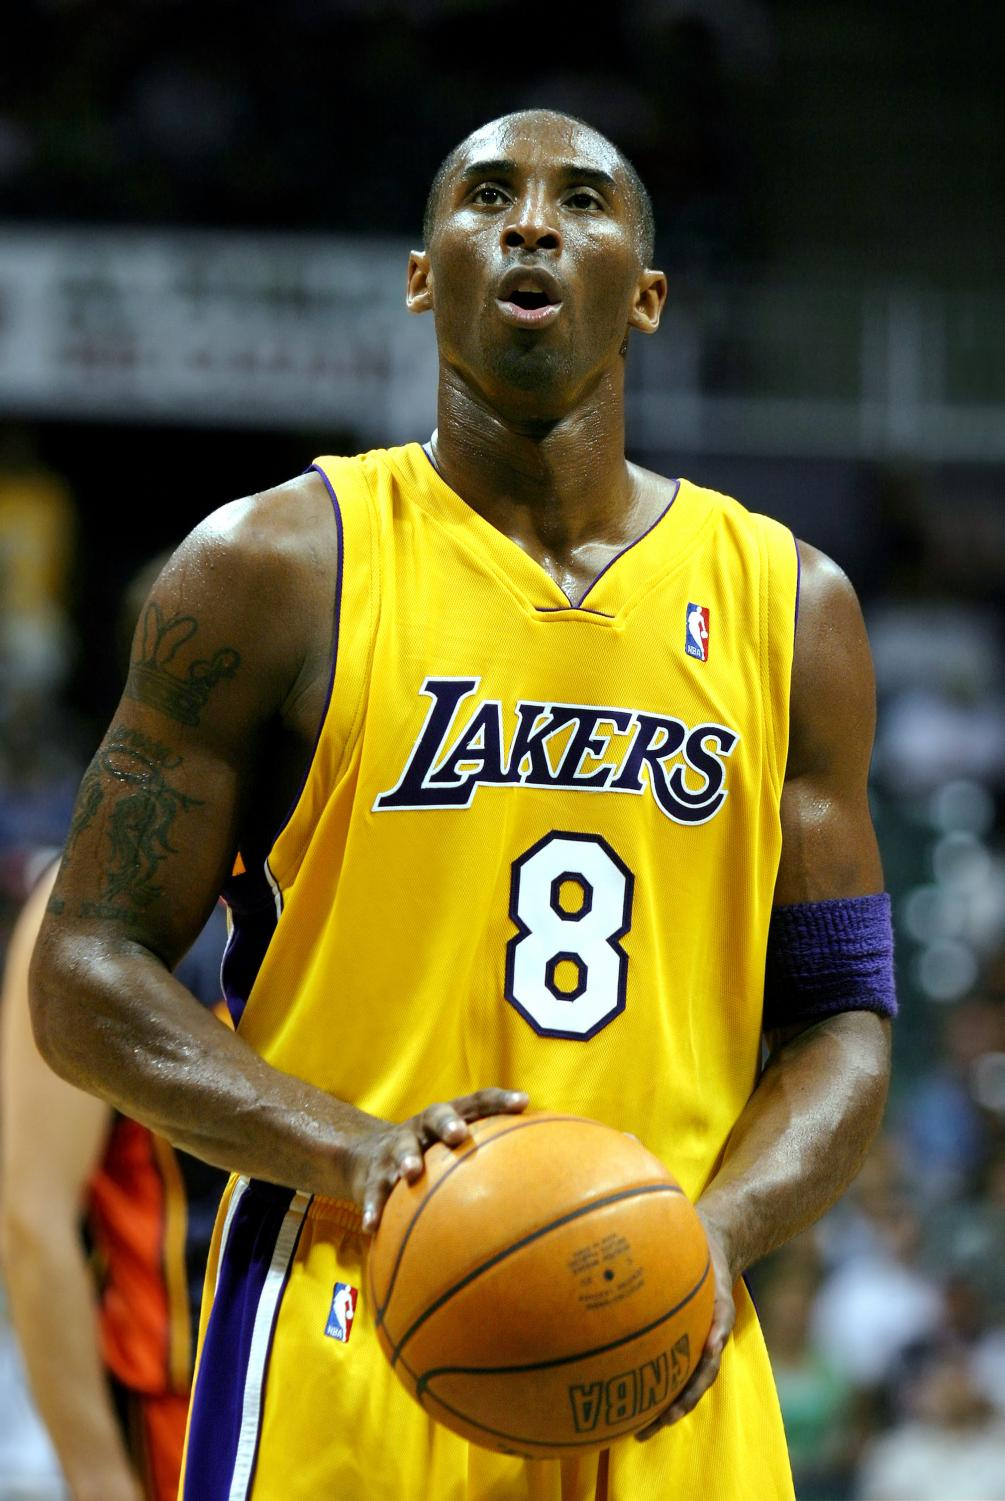 Kobe Bryant shooting at the free throw line during a pre-season NBA game in 2005.